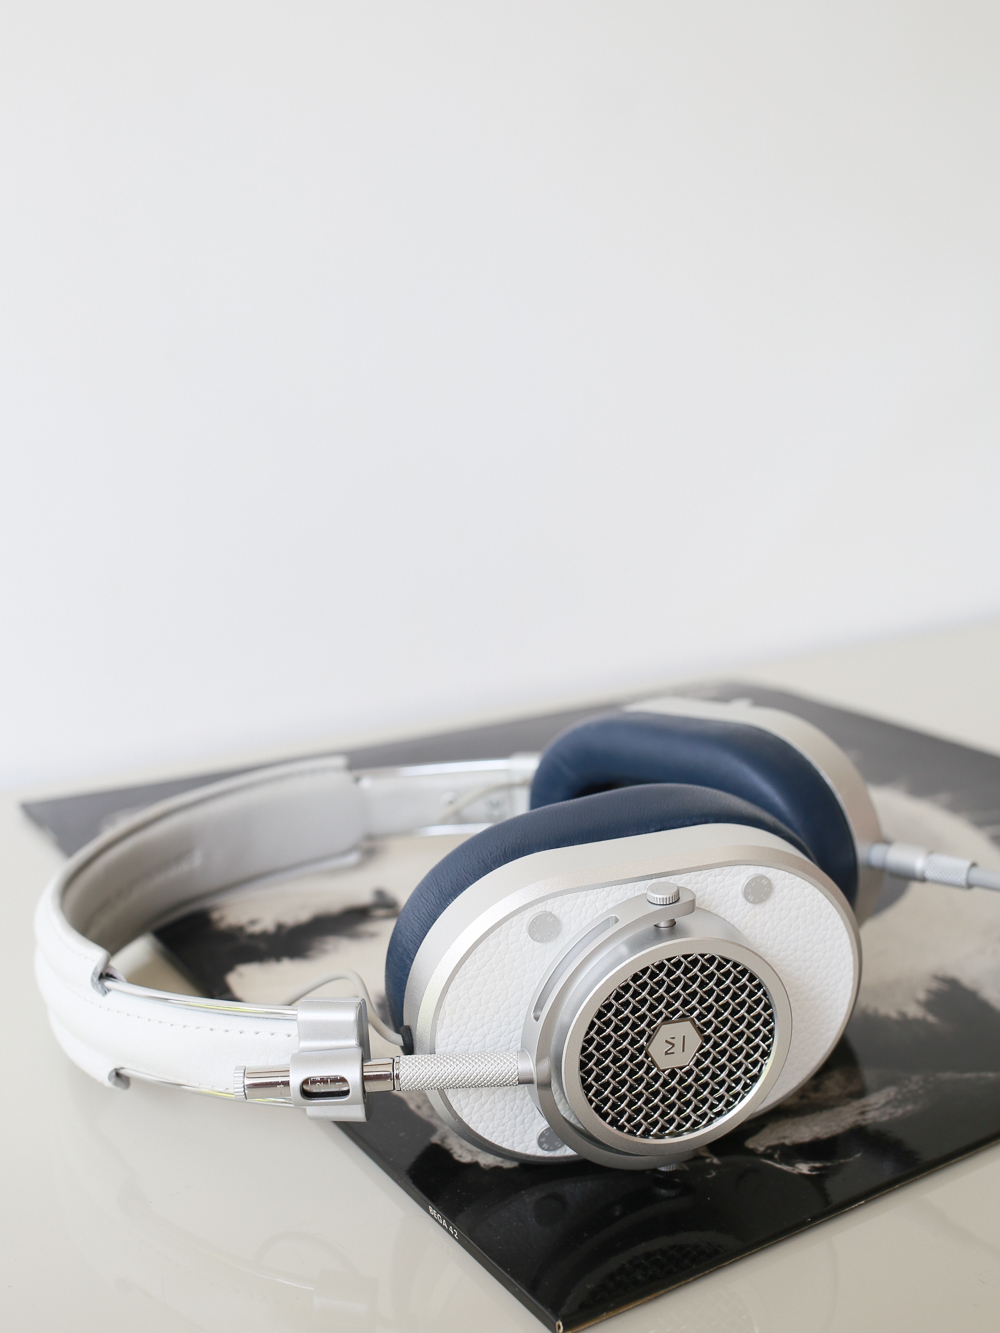 MH40 headphones by Master & Dynamic | Design Hunter